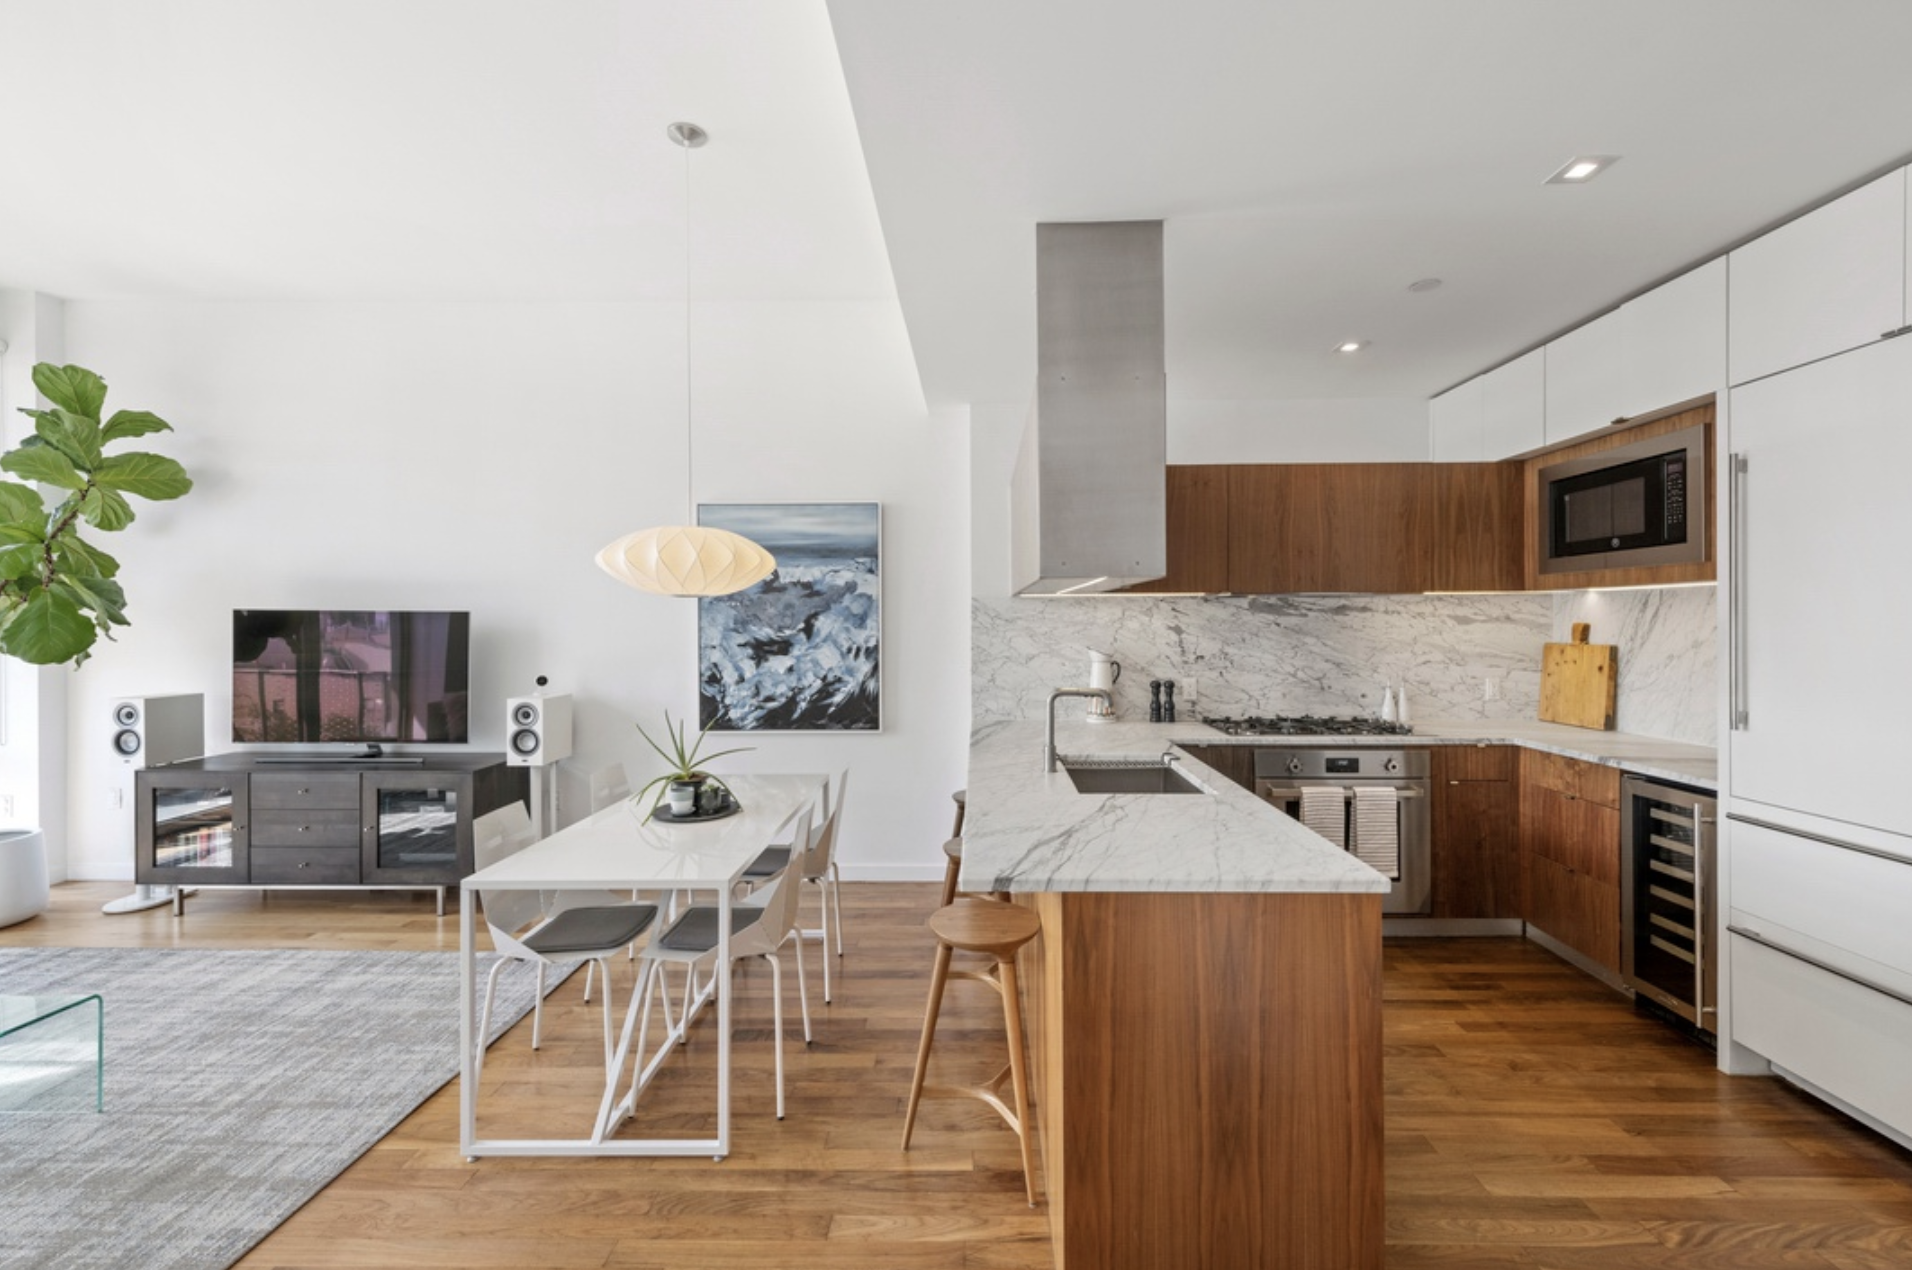 280 Metropolitan Ave, 5D - $2,195,000 // 3 Beds // 3 Baths // 1,388 Sq FtThis immaculately maintained, 2017 new construction presents a unique balance of designer apartment and the privacy of a premier, amenitized 28-residence condominium all in in a highly sought after central Williamsburg location. Completing this dream home are a private rooftop terrace with bridge and city views, private indoor parking space, and a private storage unit all included!